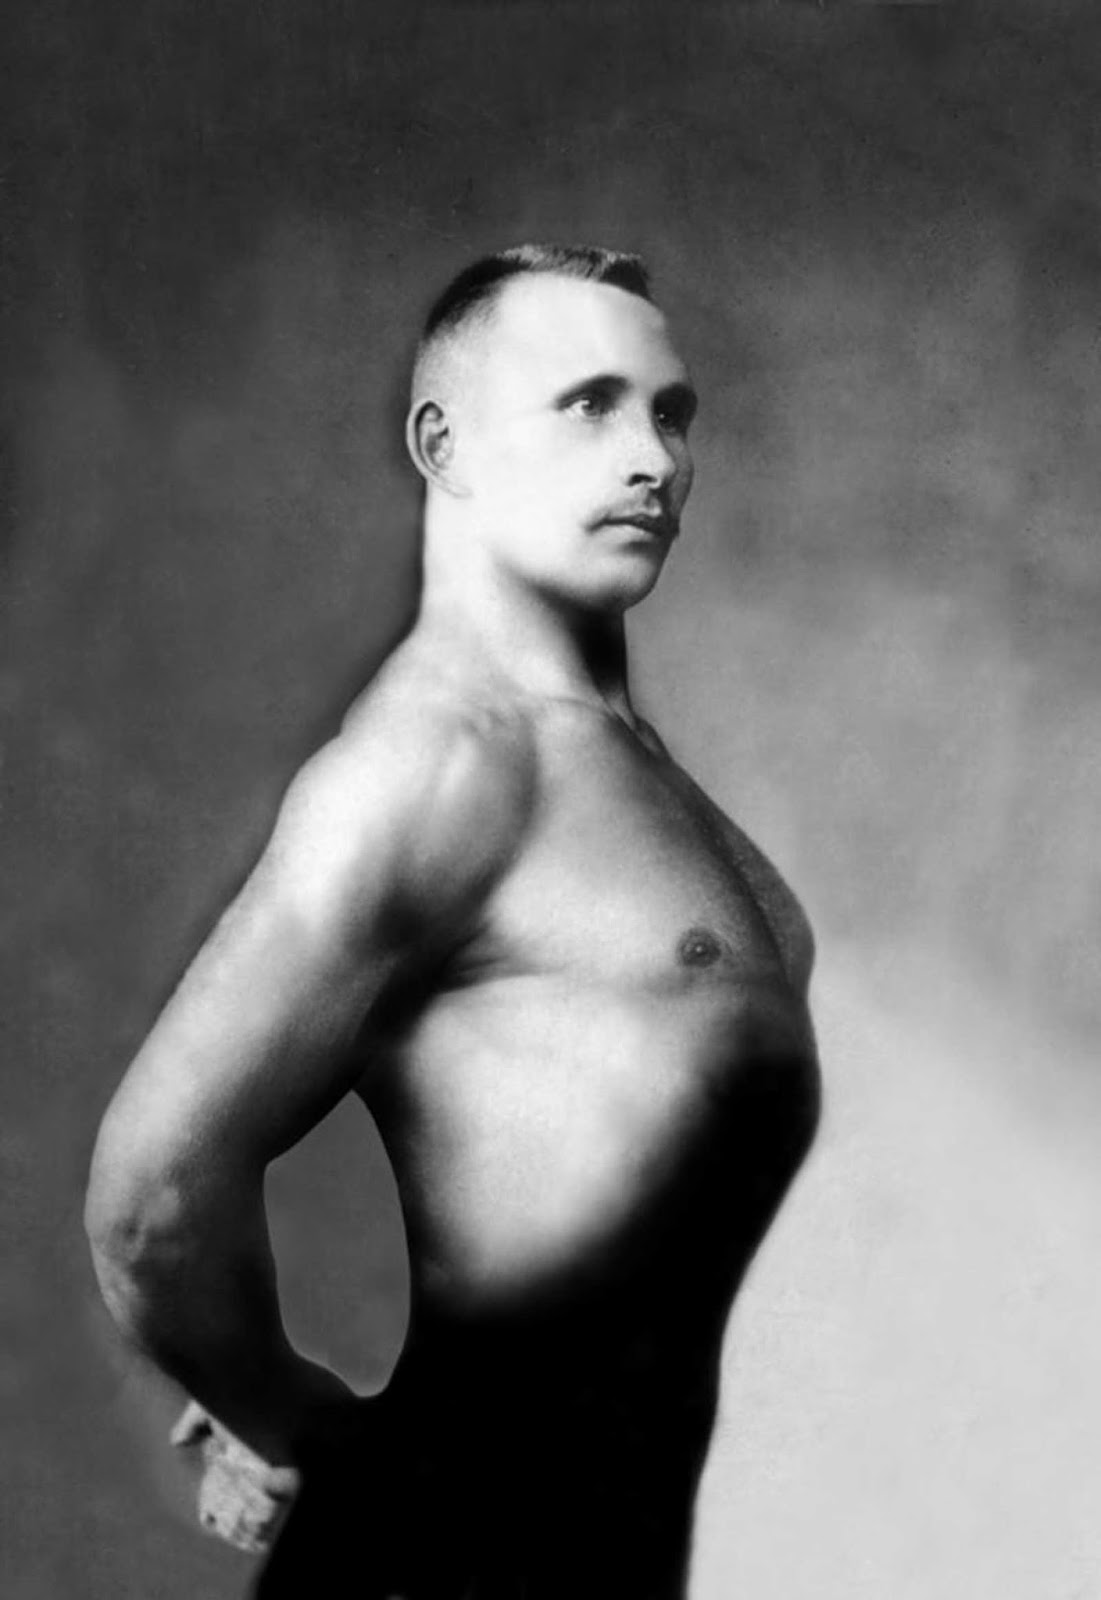 A Russian bodybuilder, photographed in a studio circa 1900.